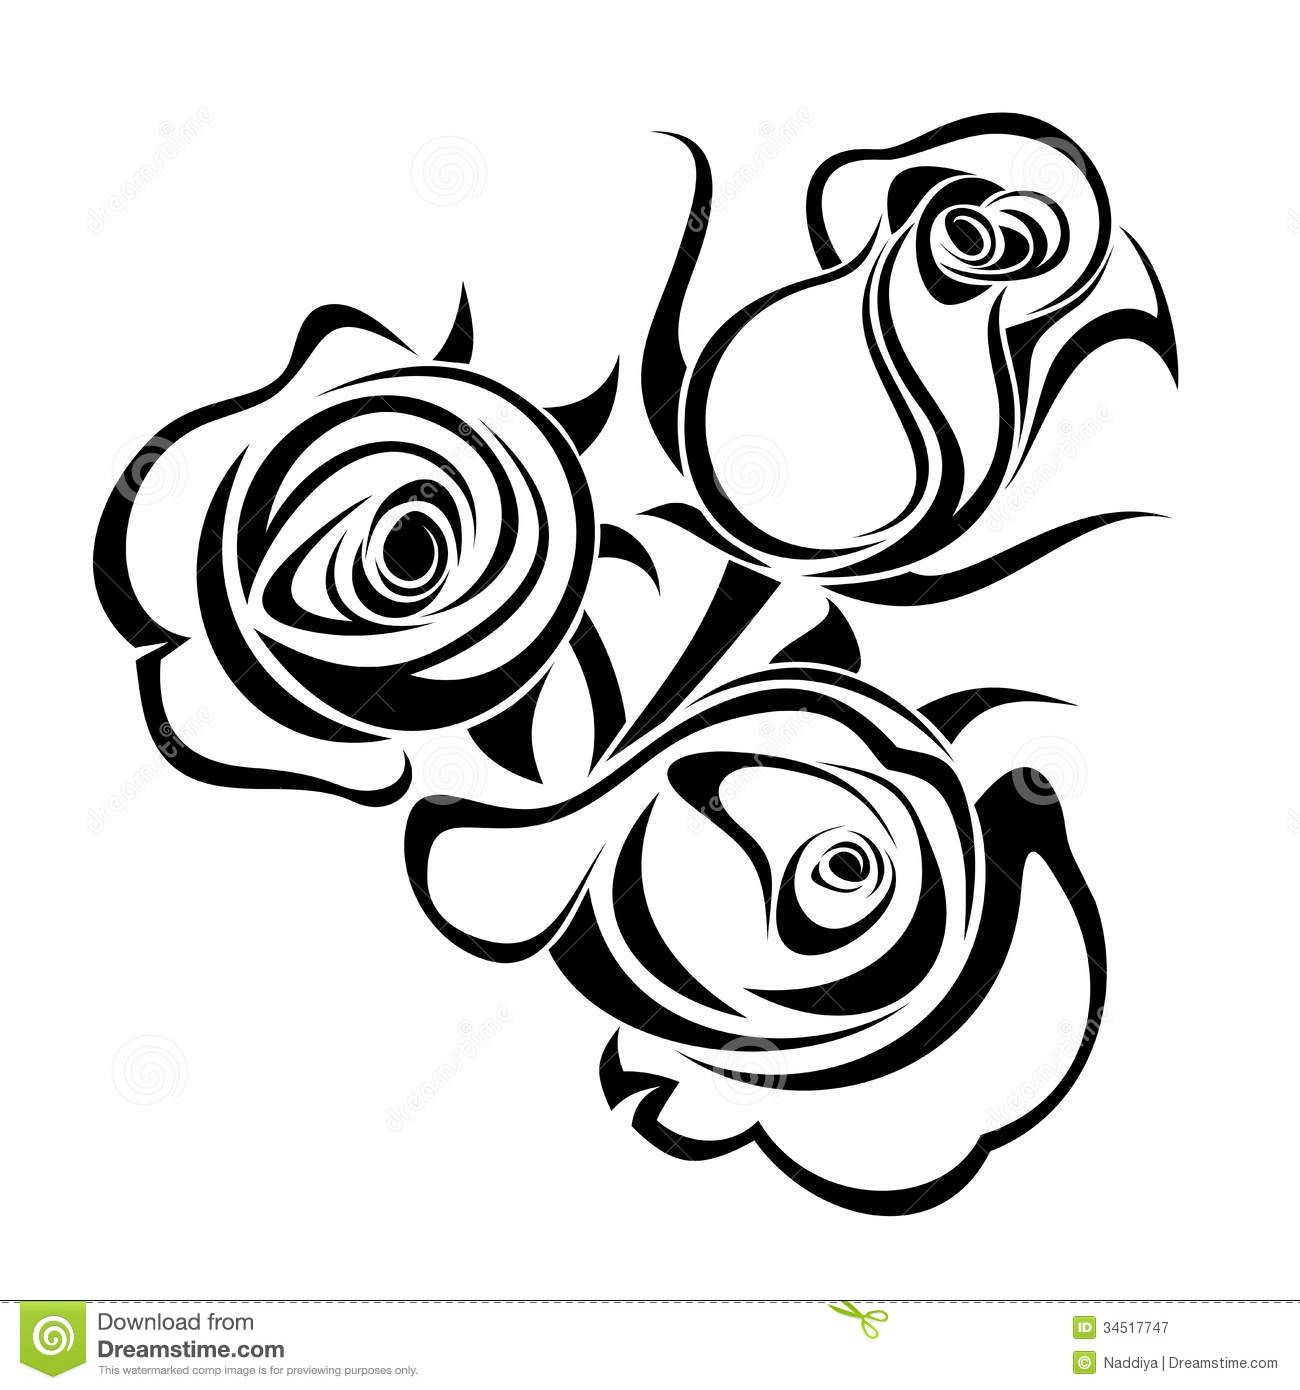 Rose Bouquet Clip Art Black And White Rose Buds Black.